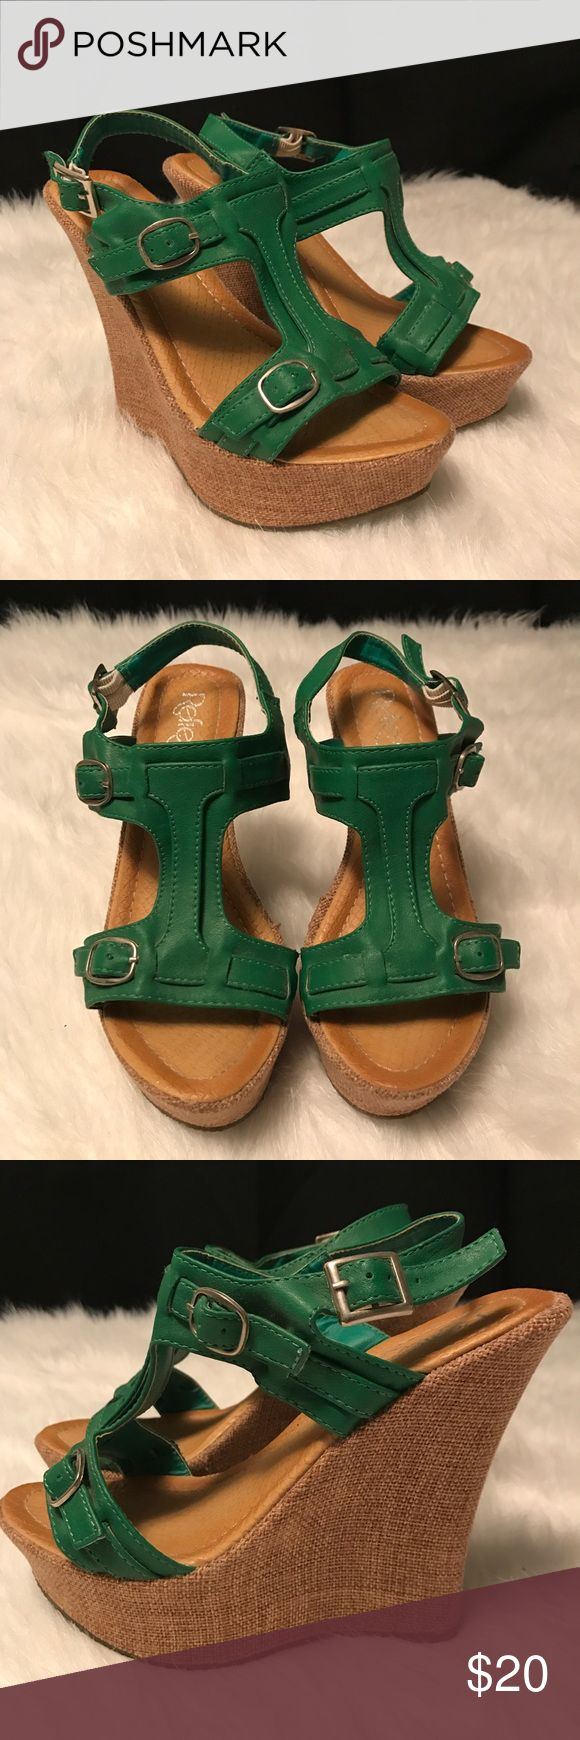 "Refresh by Beston wedges Refresh by Beston ""Fontini"" emerald green wedges in good used condition. Wedge is canvas covered. Some slight wear on the canvas area, shown in pictures. Size 7. refresh by beston Shoes Wedges"